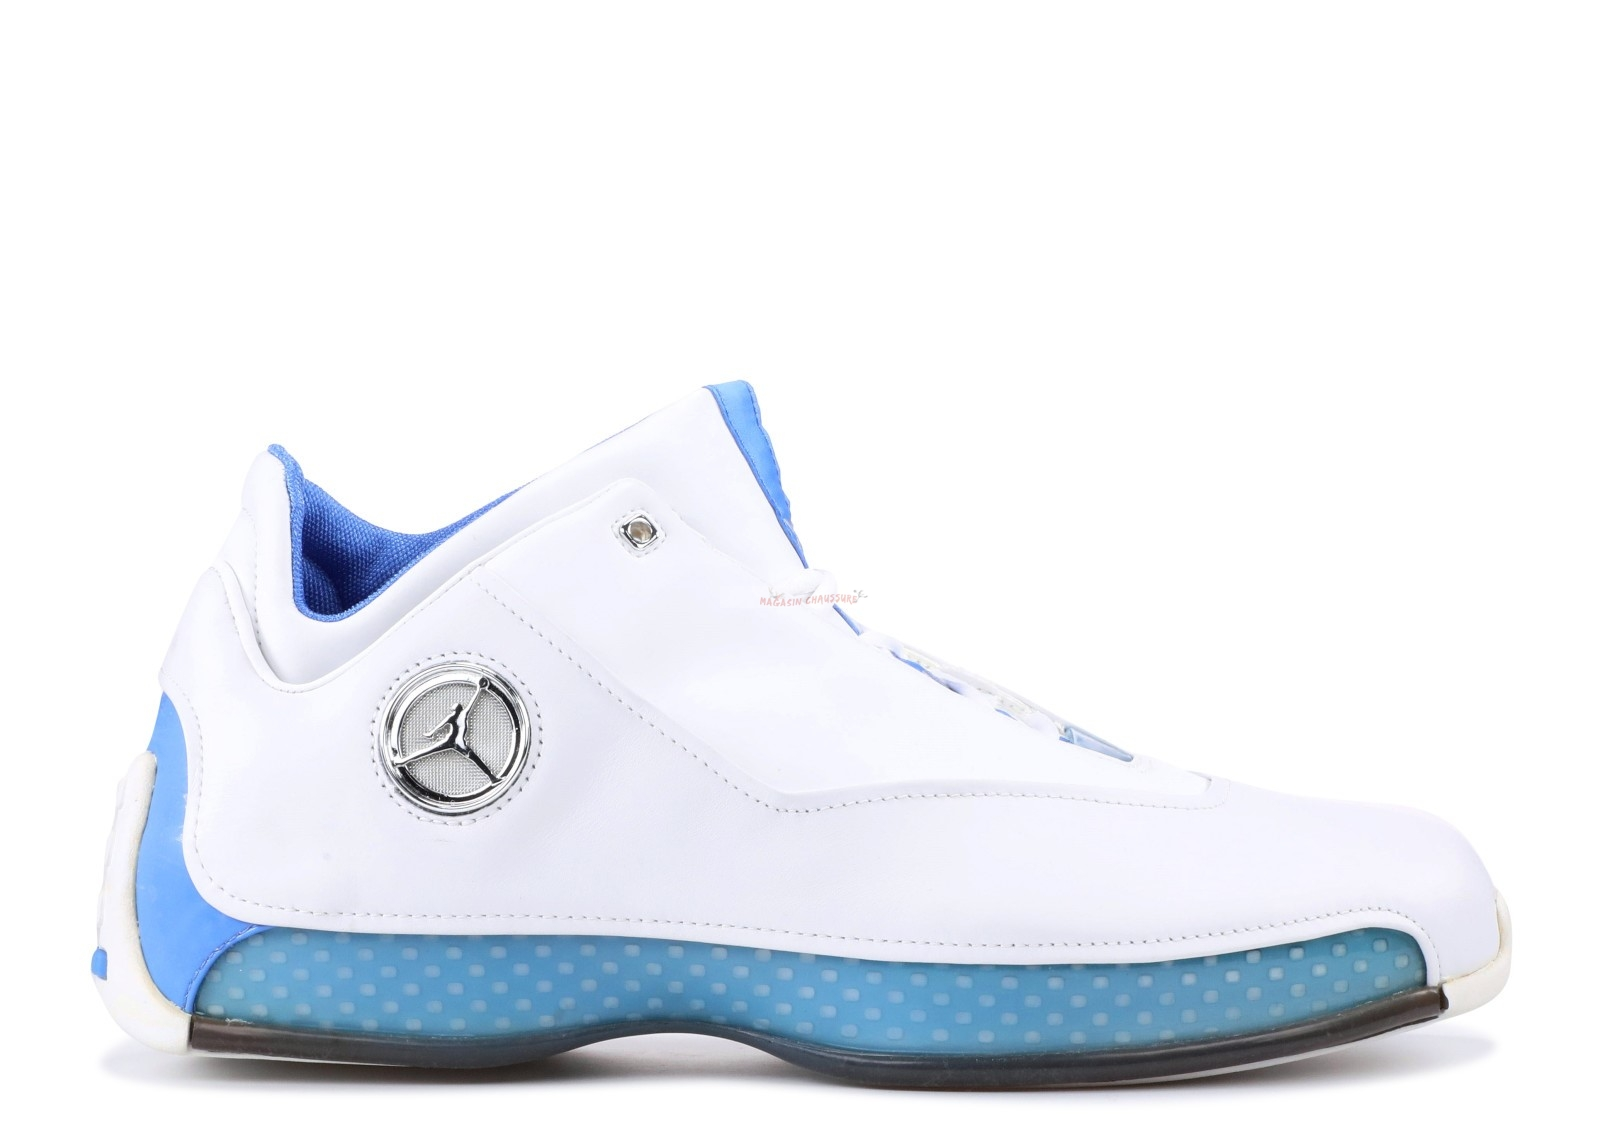 Air Jordan 18 Low Blanc Bleu (306151-104) Chaussure de Basket